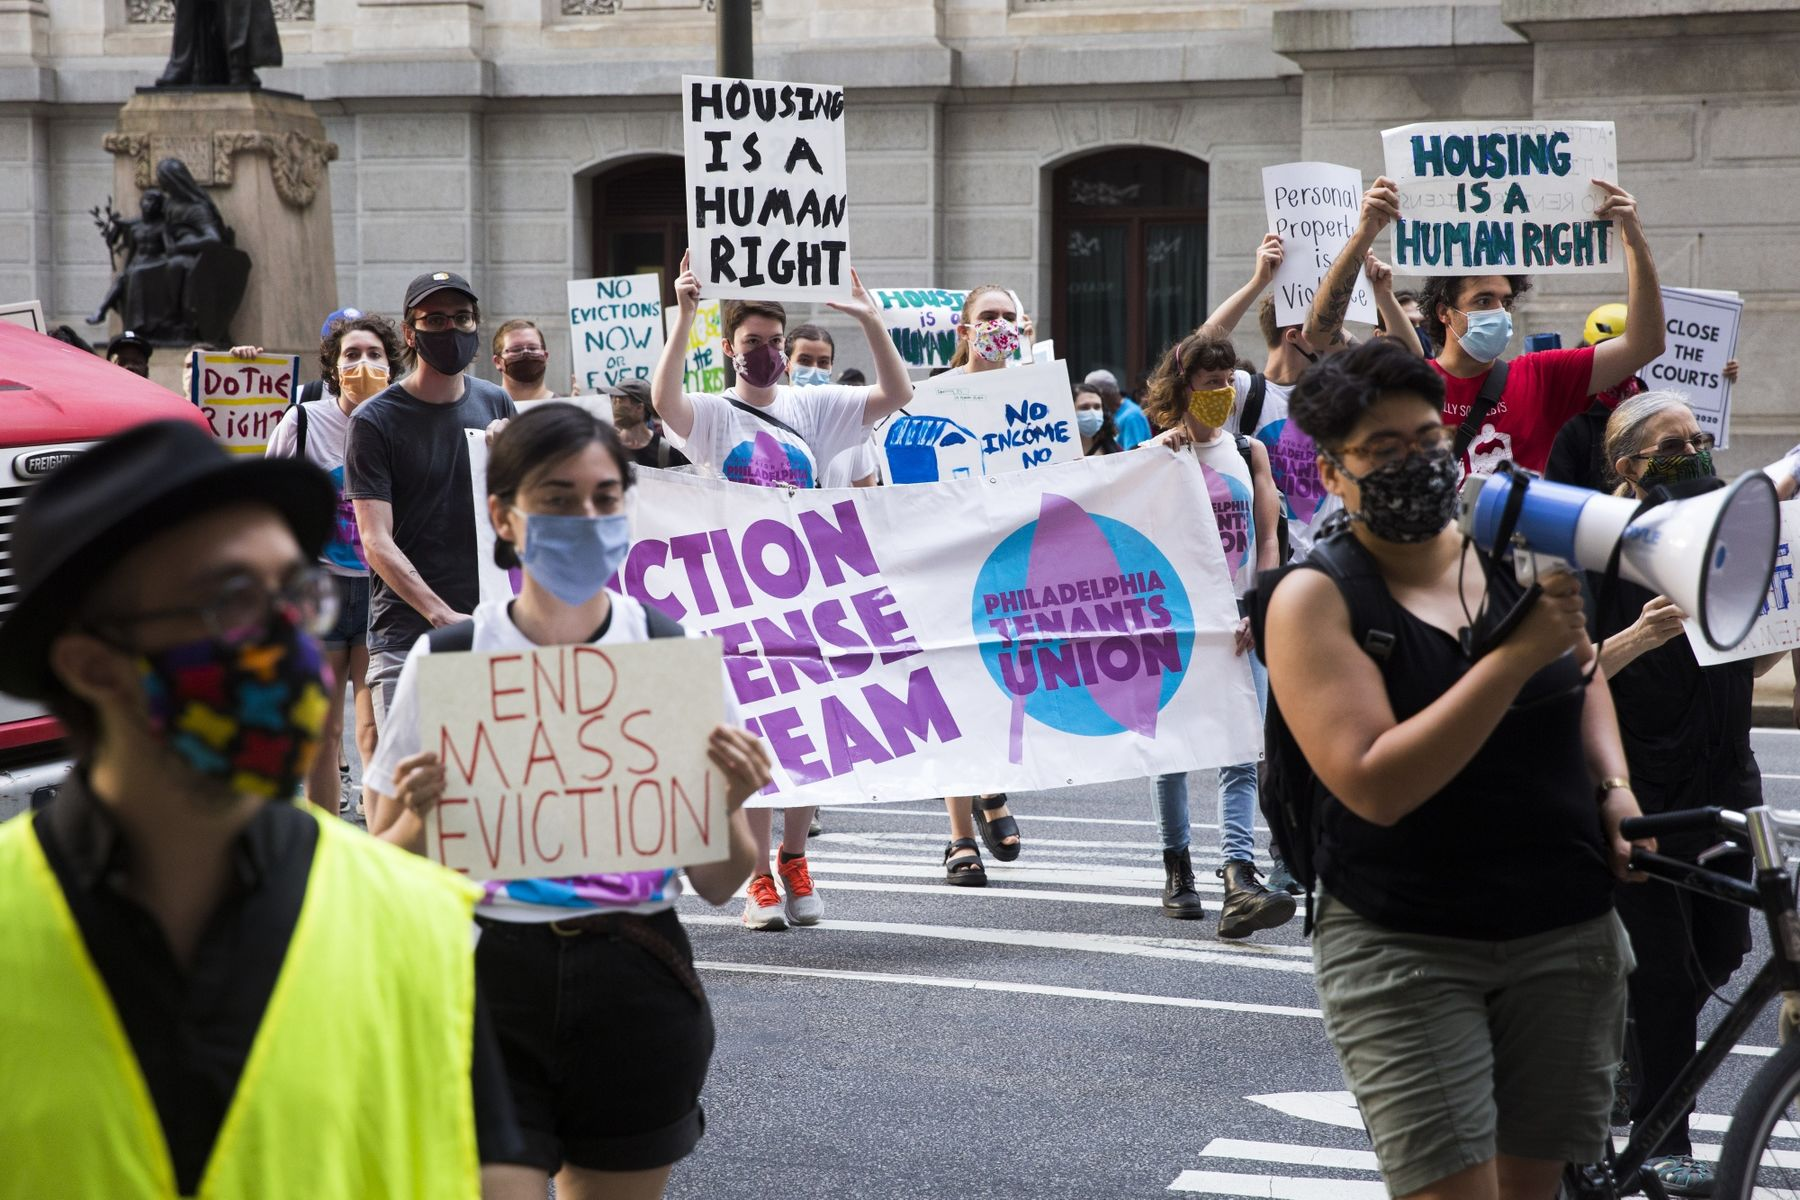 Demonstrators in Philadelphia march from City Hall to the Municipal Court to protest against evictions in September2020. A city program started during the pandemic has thwarted hundreds of evictions.